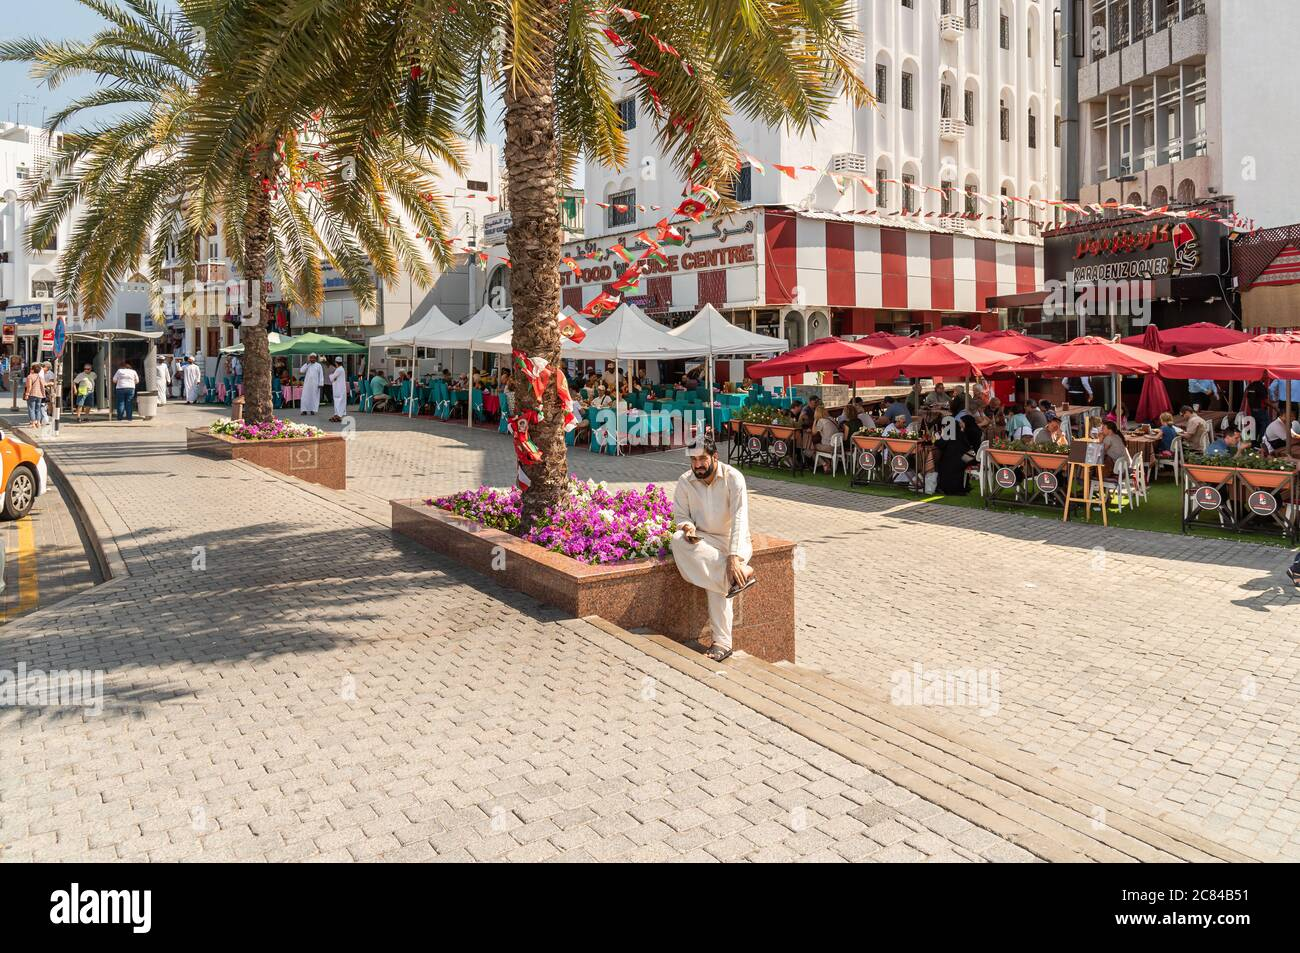 Mutrah, Oman - February 10, 2020: People enjoying a outdoor bars and restaurants in the center of Mutrah in a hot day, province of Muscat, Sultanate o Stock Photo